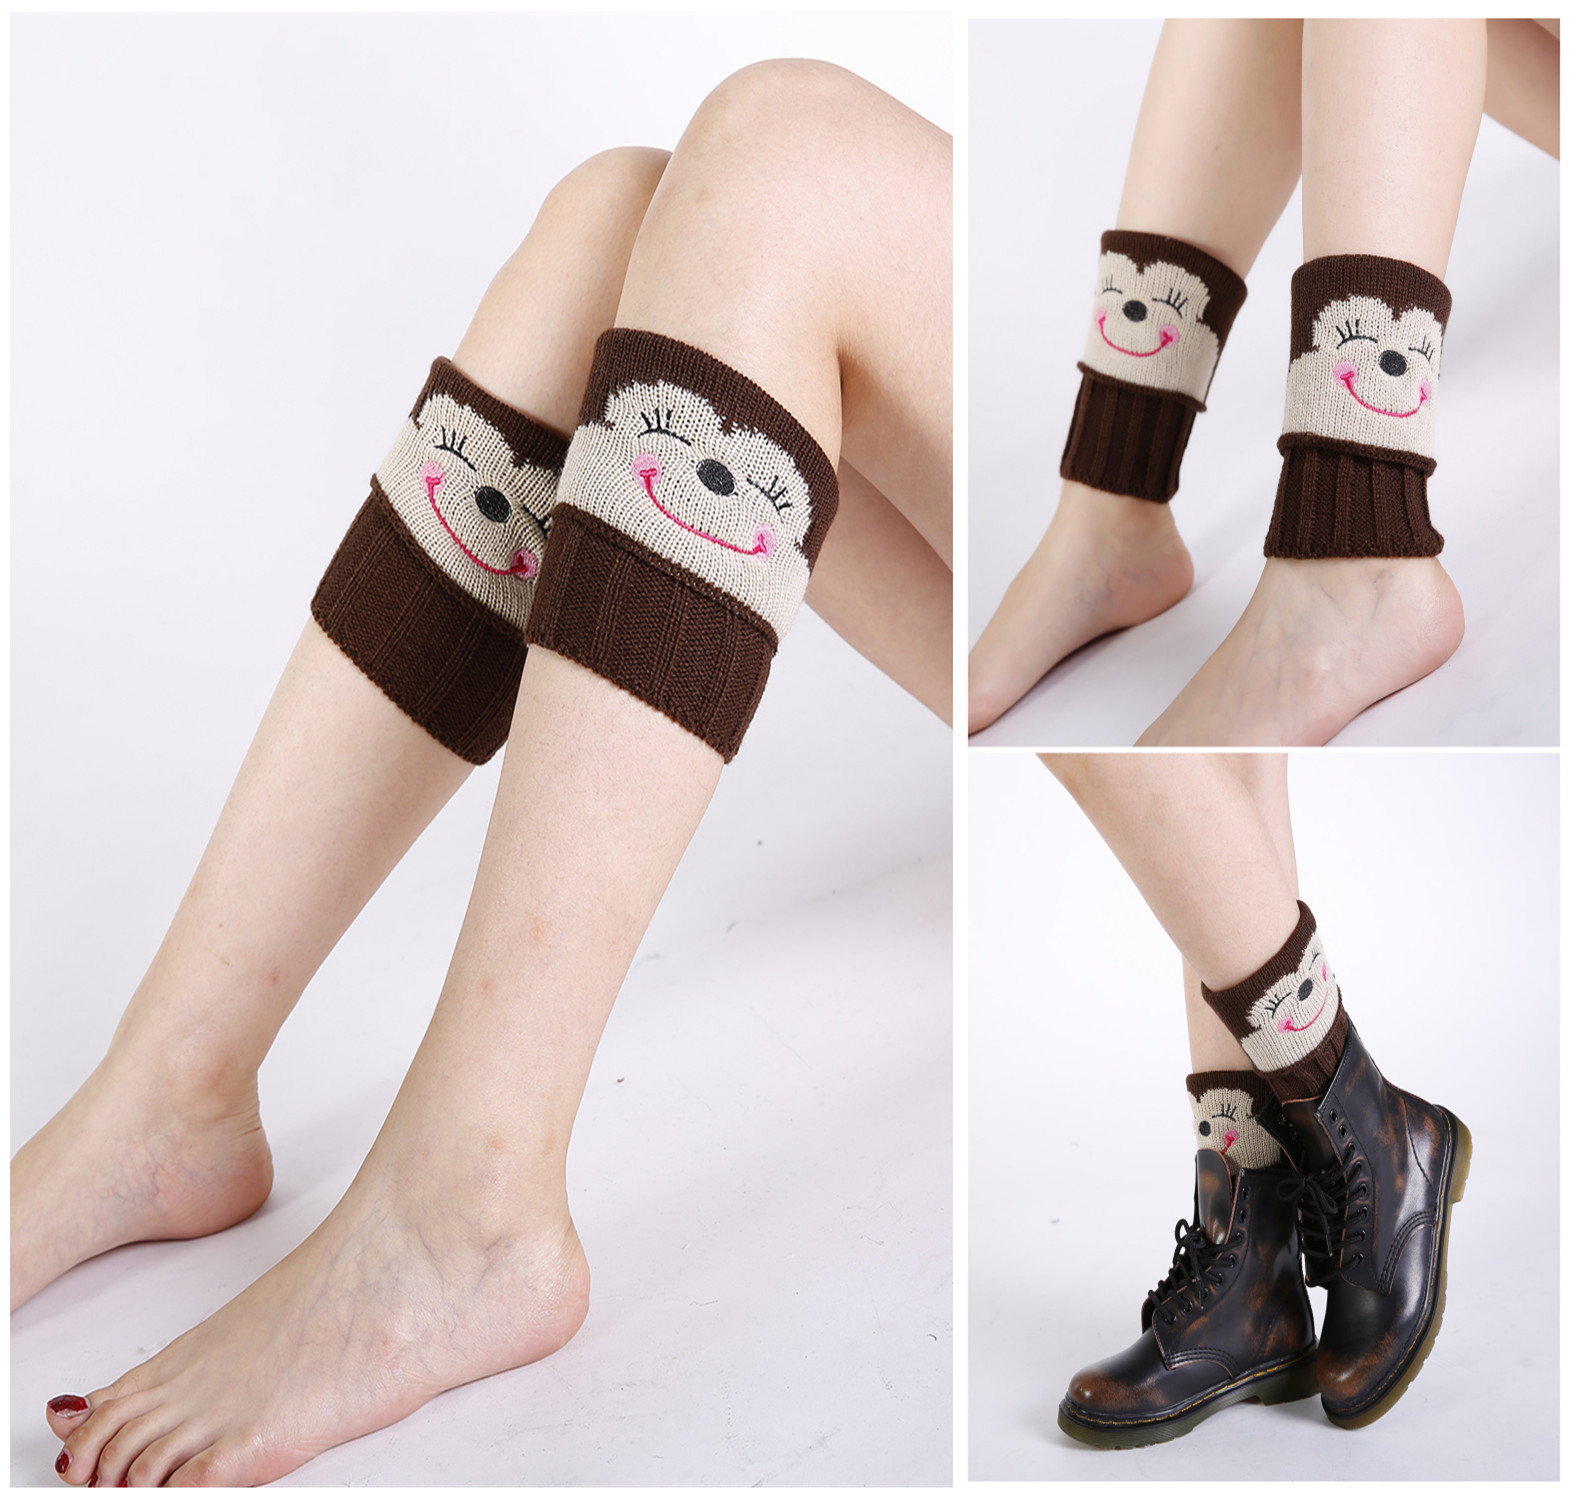 Fashion Autumn And Winter New Knitted Wool Socks Set Women's Short Flip Embroidery Handmade Monkey Warm Foot Cover Boots